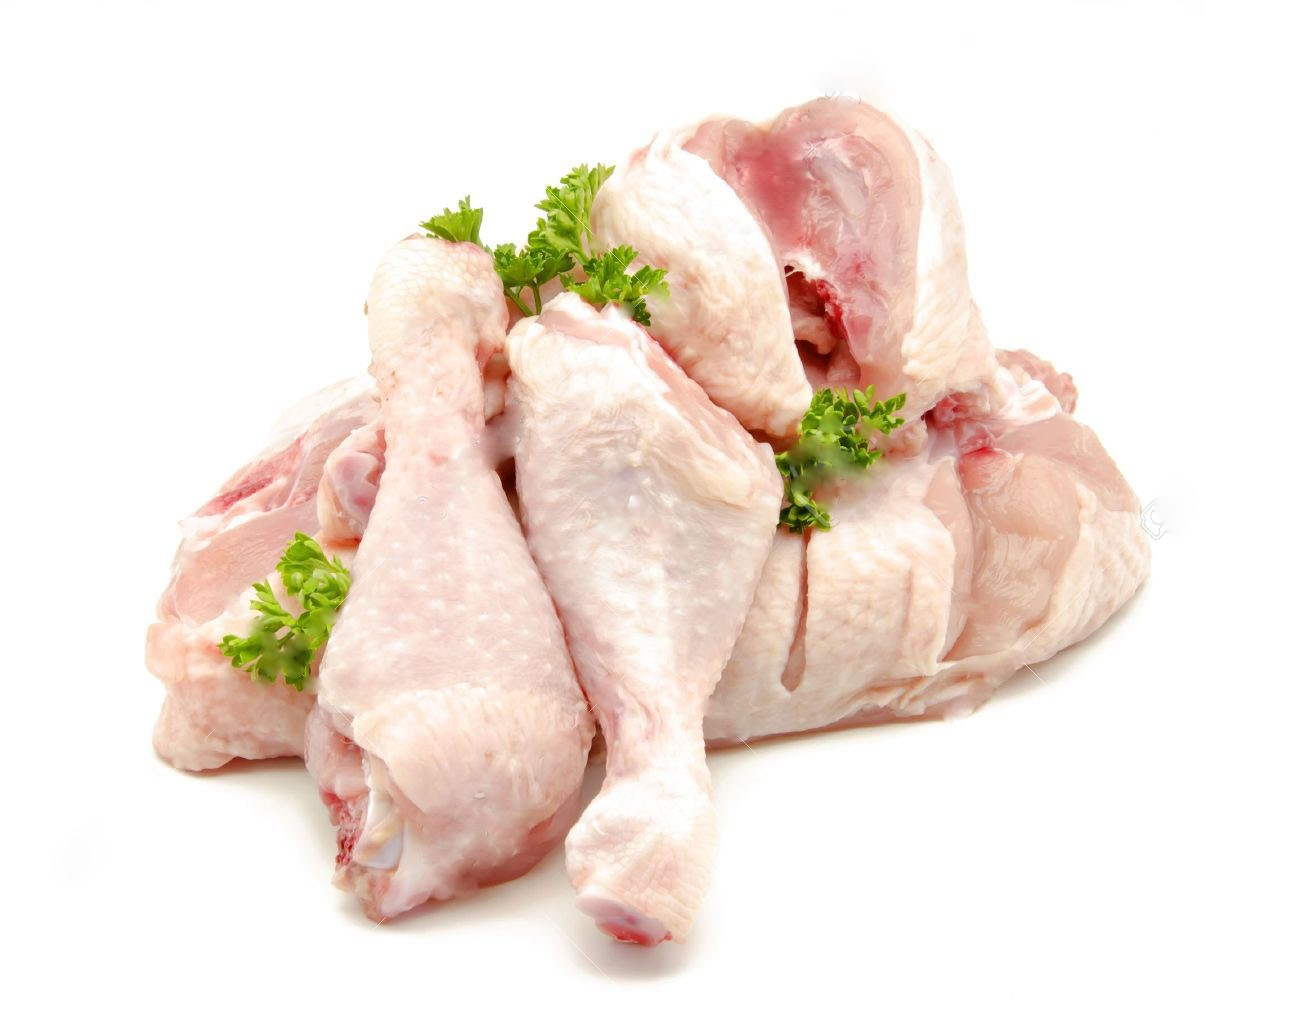 Chicken Drumsticks, Glatt kosher